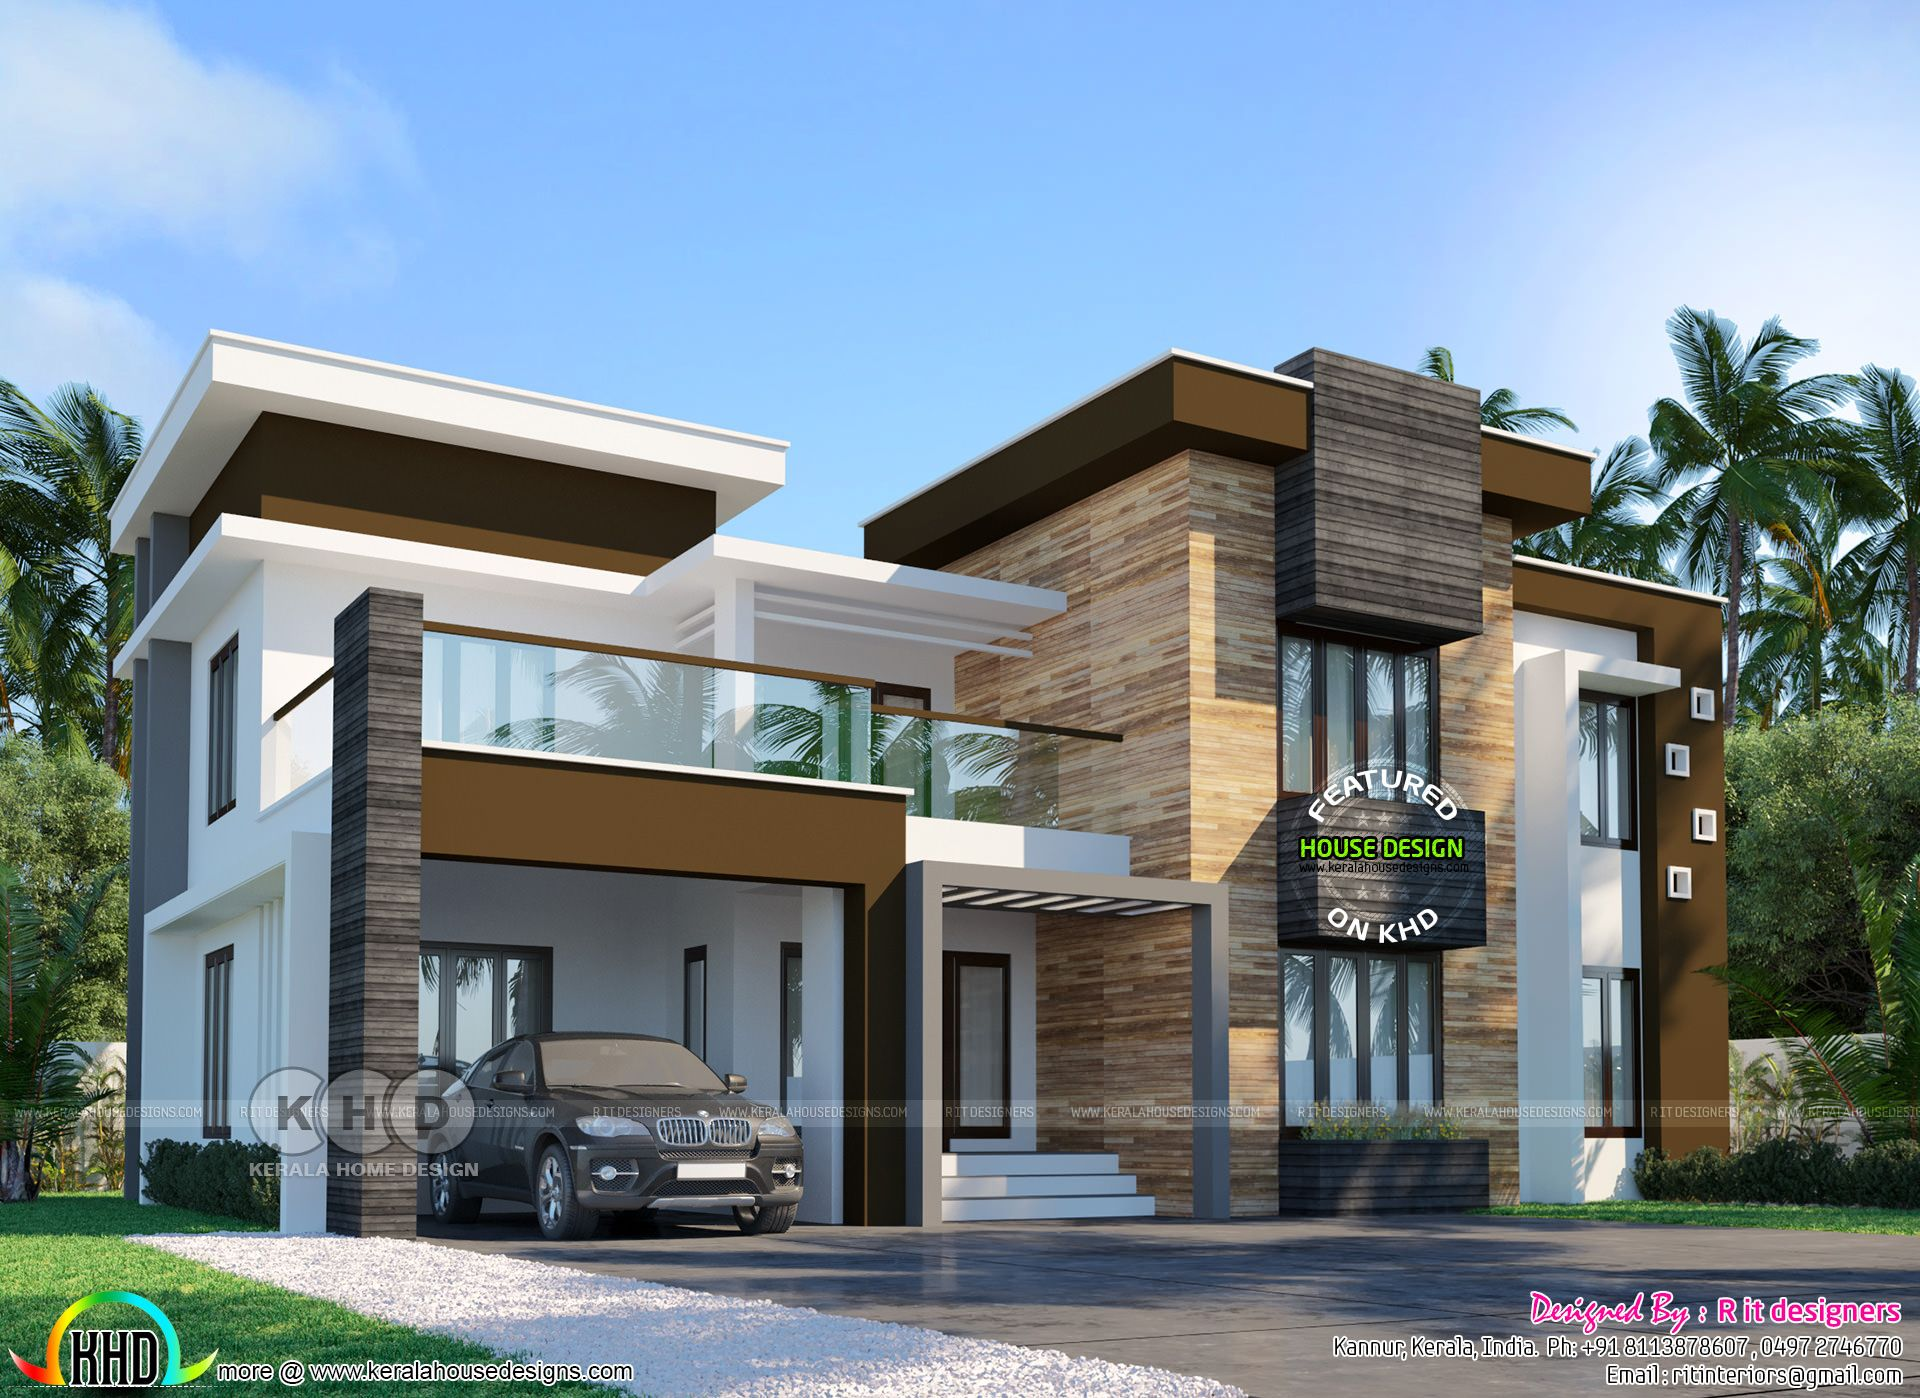 5 Bedroom Modern Luxury Residence Design Kerala House Design Beautiful House Plans Duplex House Design